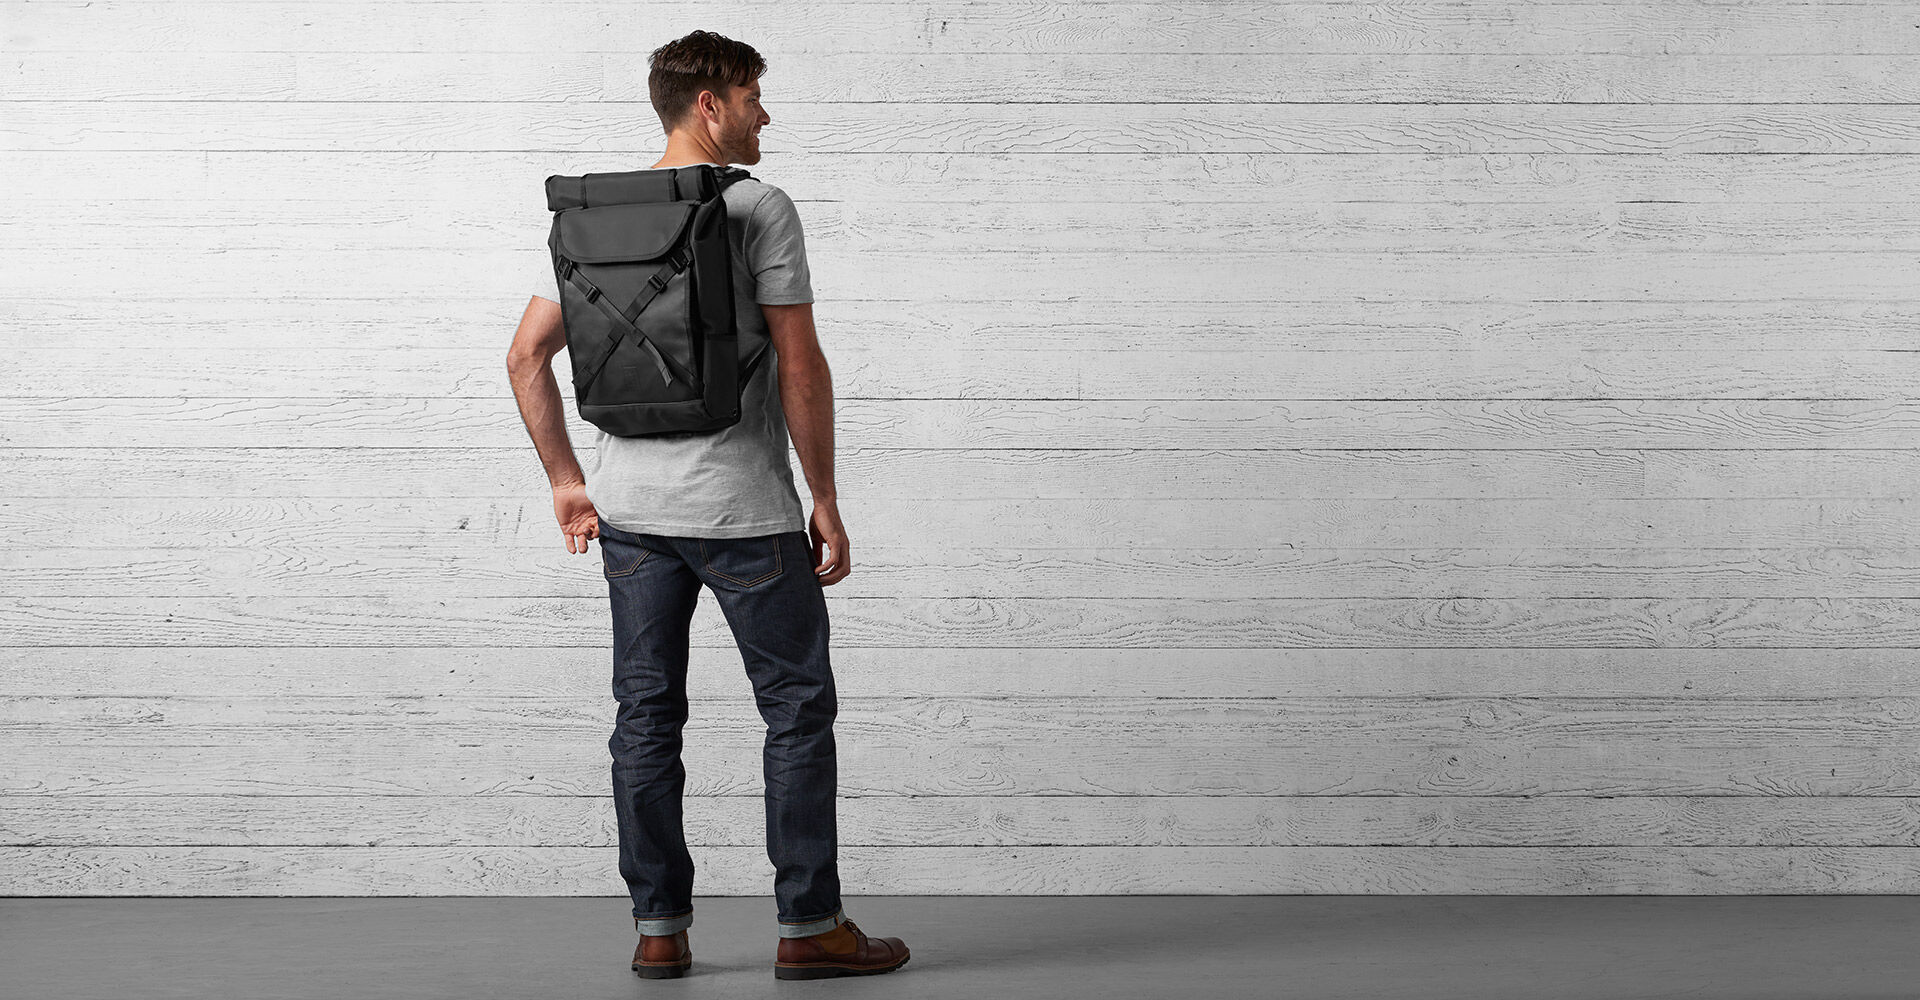 BLCKCHRM™ Bravo 2.0 Backpack in Blckchrm - wide view.